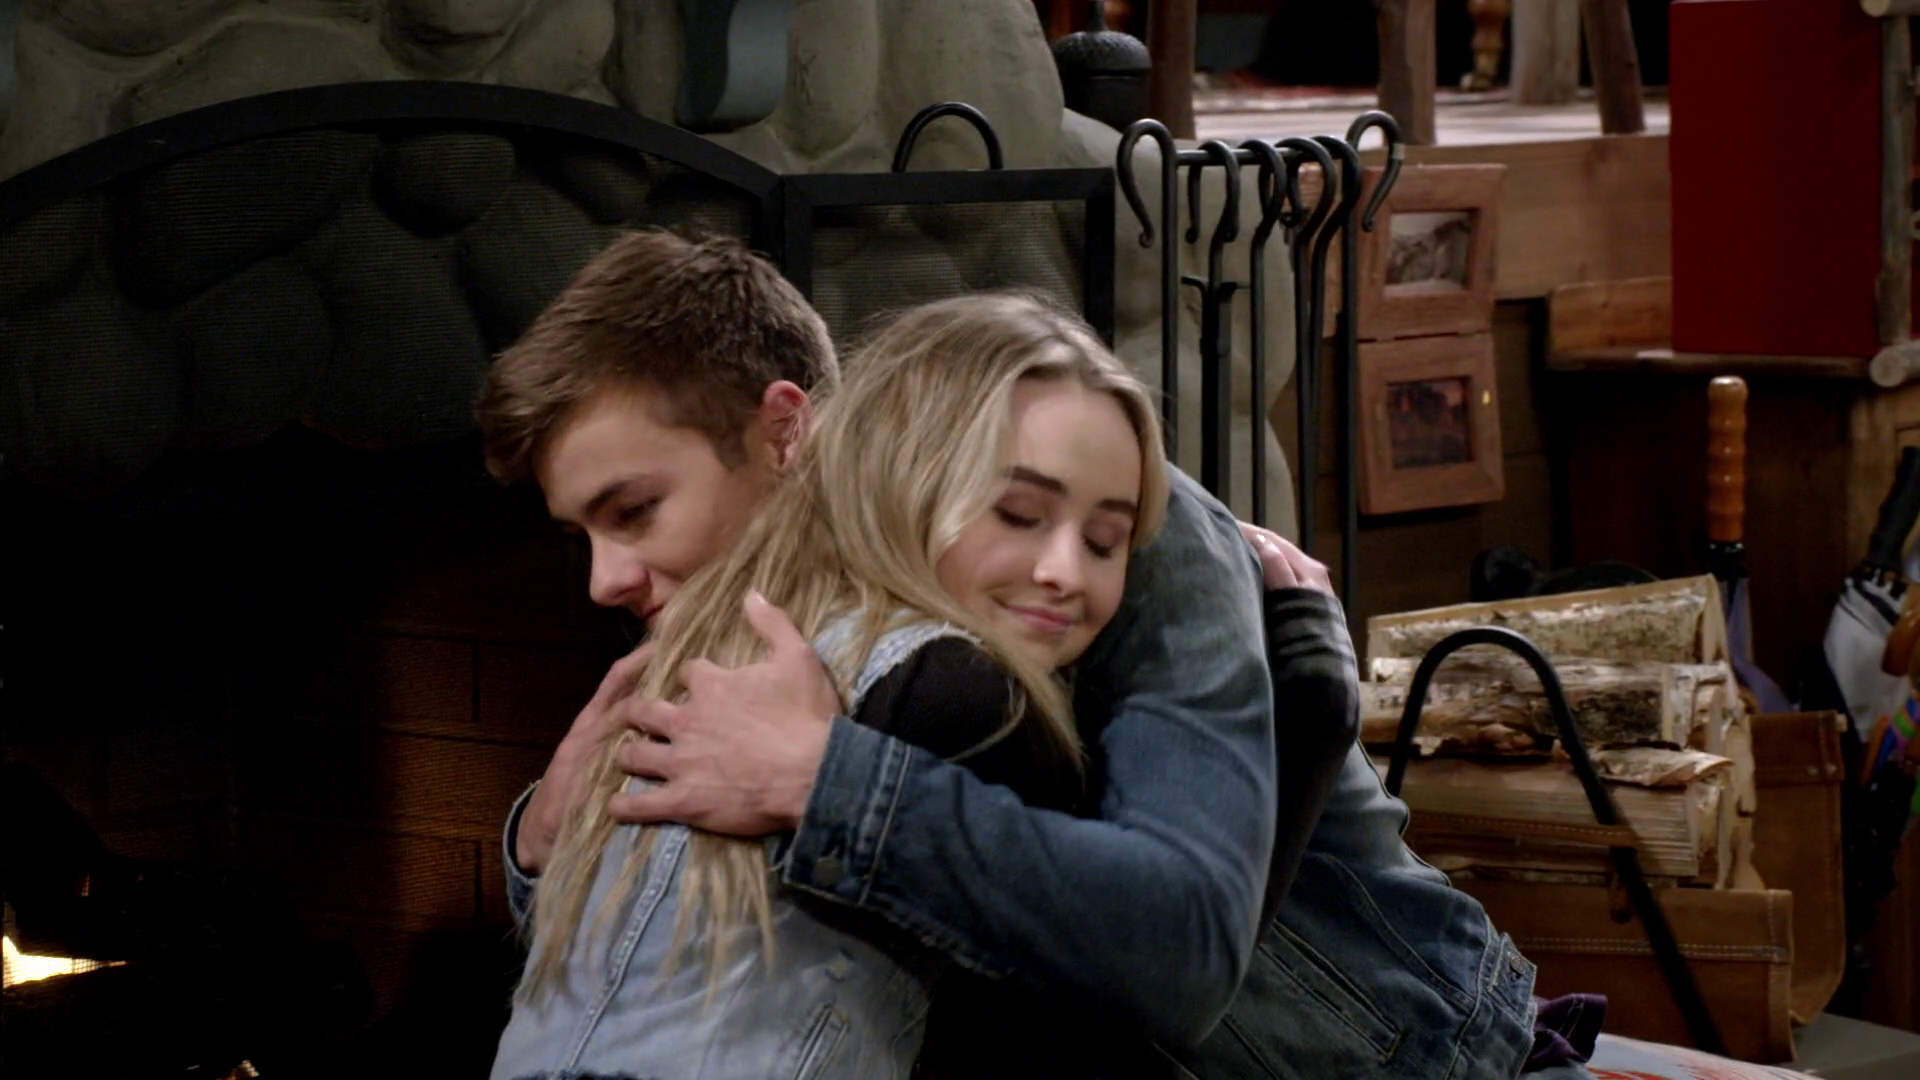 latest episode of girl meets world hug